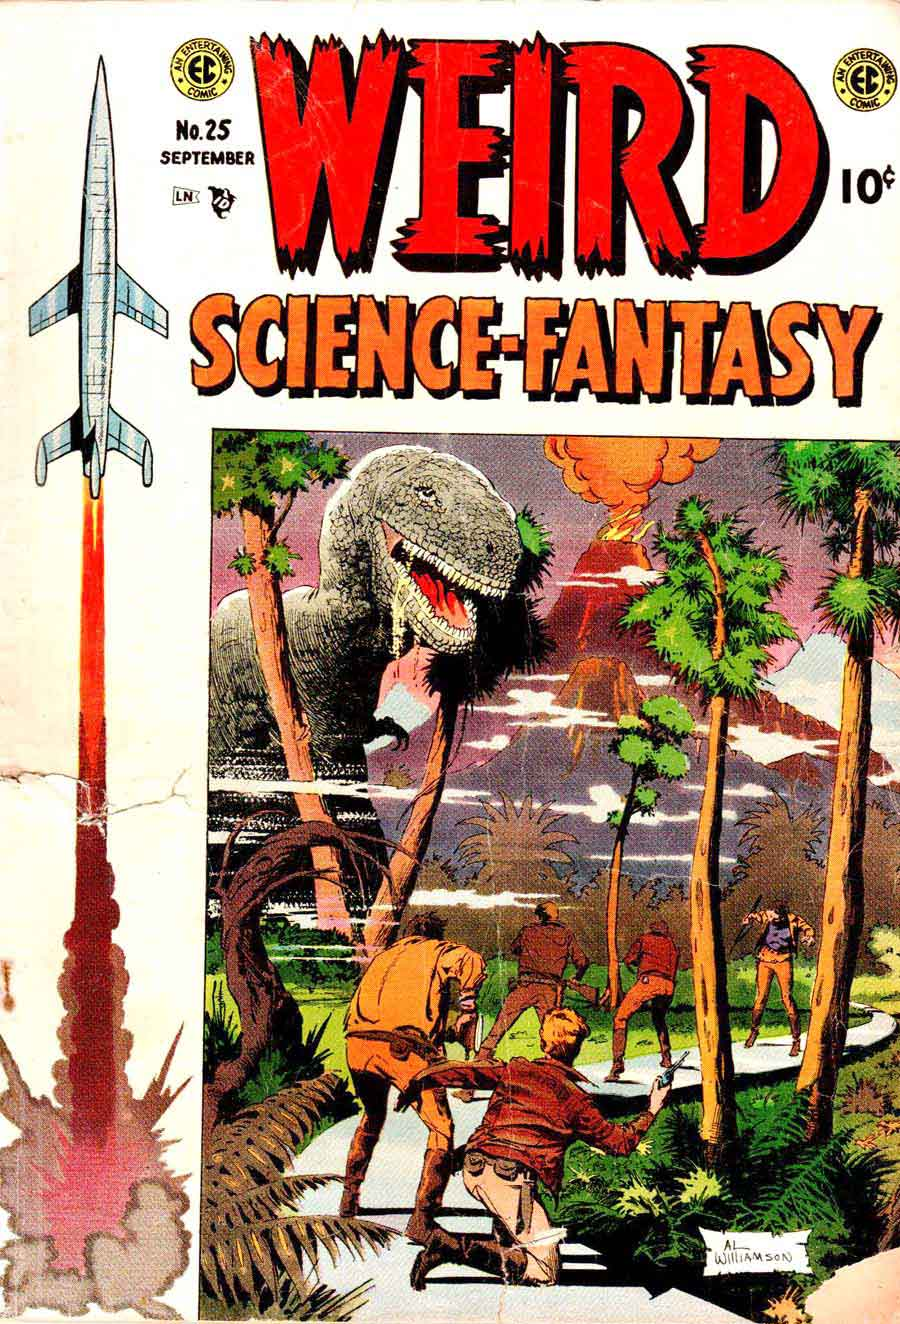 Weird Science-Fantasy #25 golden age EC 1950s science fiction comic book cover art by Al Williamson